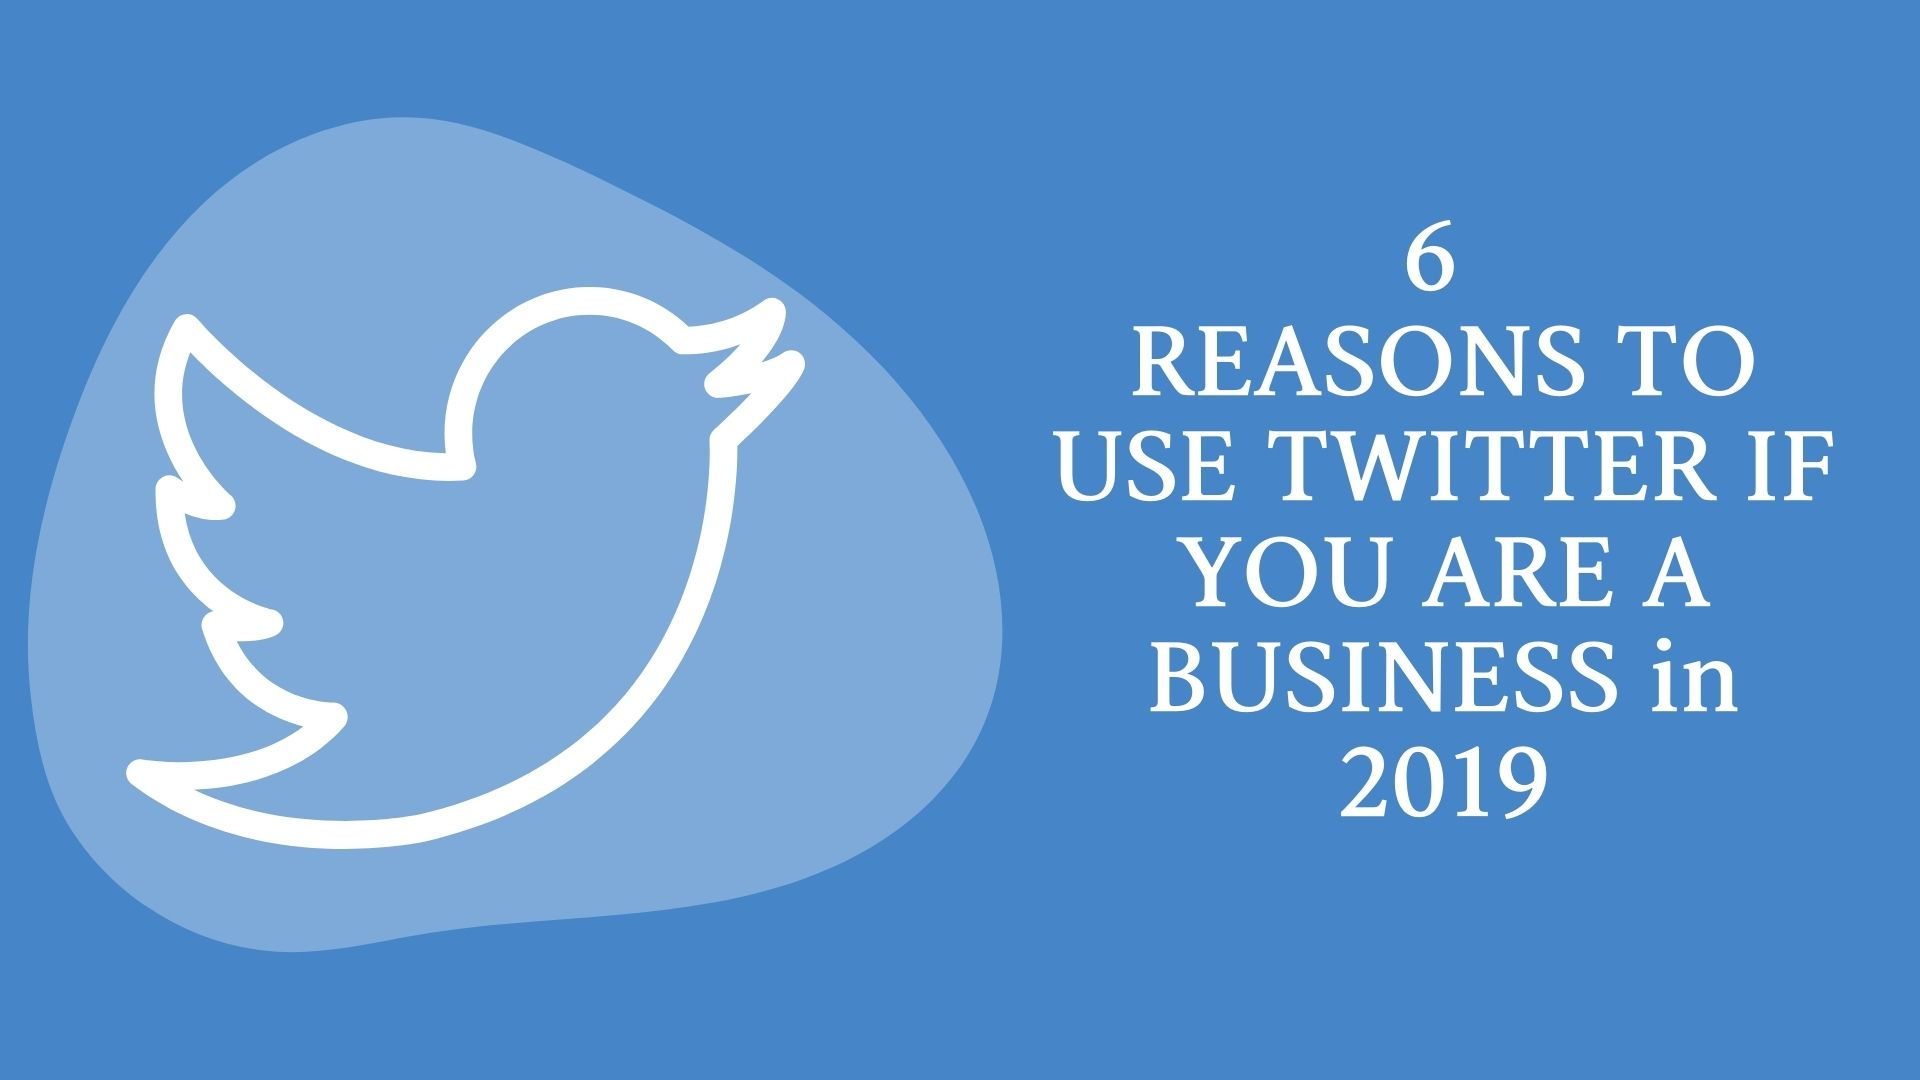 6 REASONS TO USE TWITTER IF YOU ARE A BUSINESS in 2019